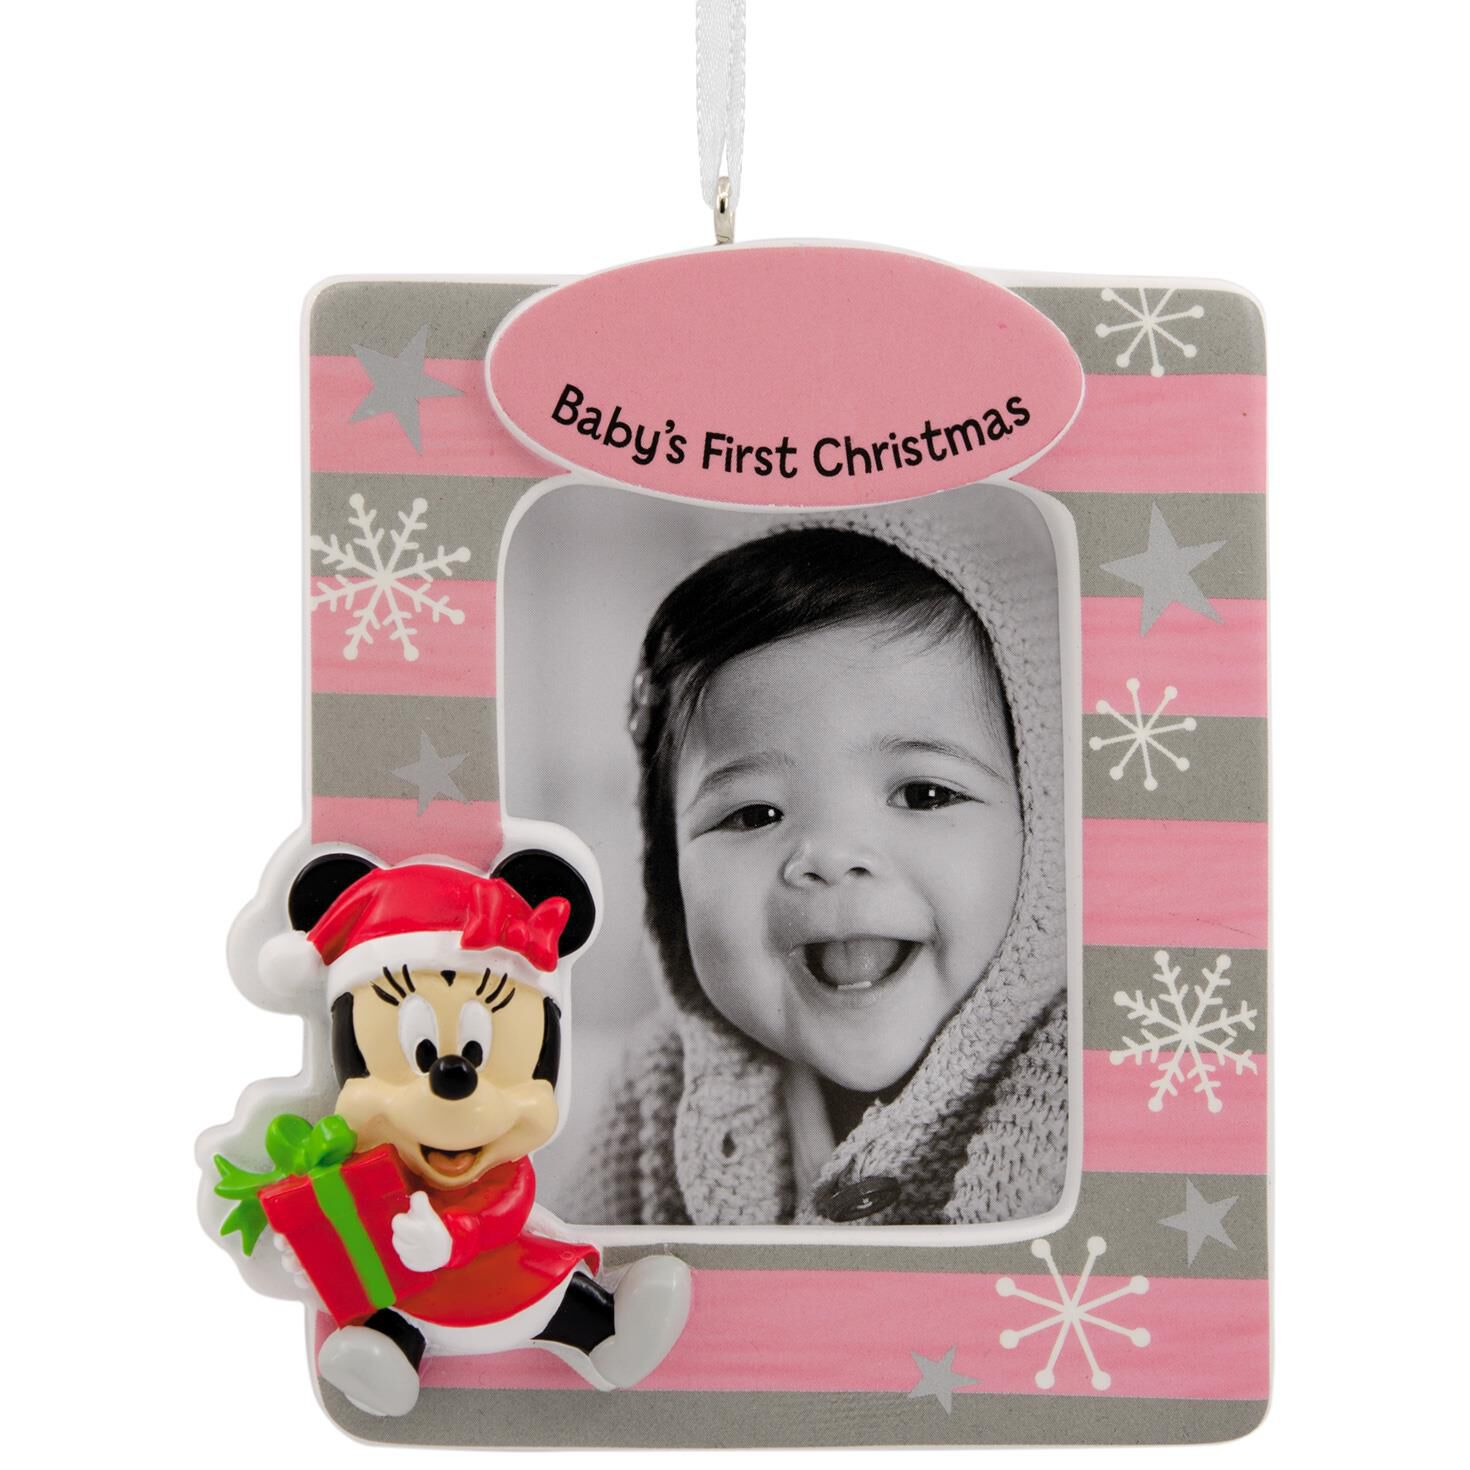 disney minnie mouse babys first christmas diy personalization picture frame hallmark ornament gift ornaments hallmark